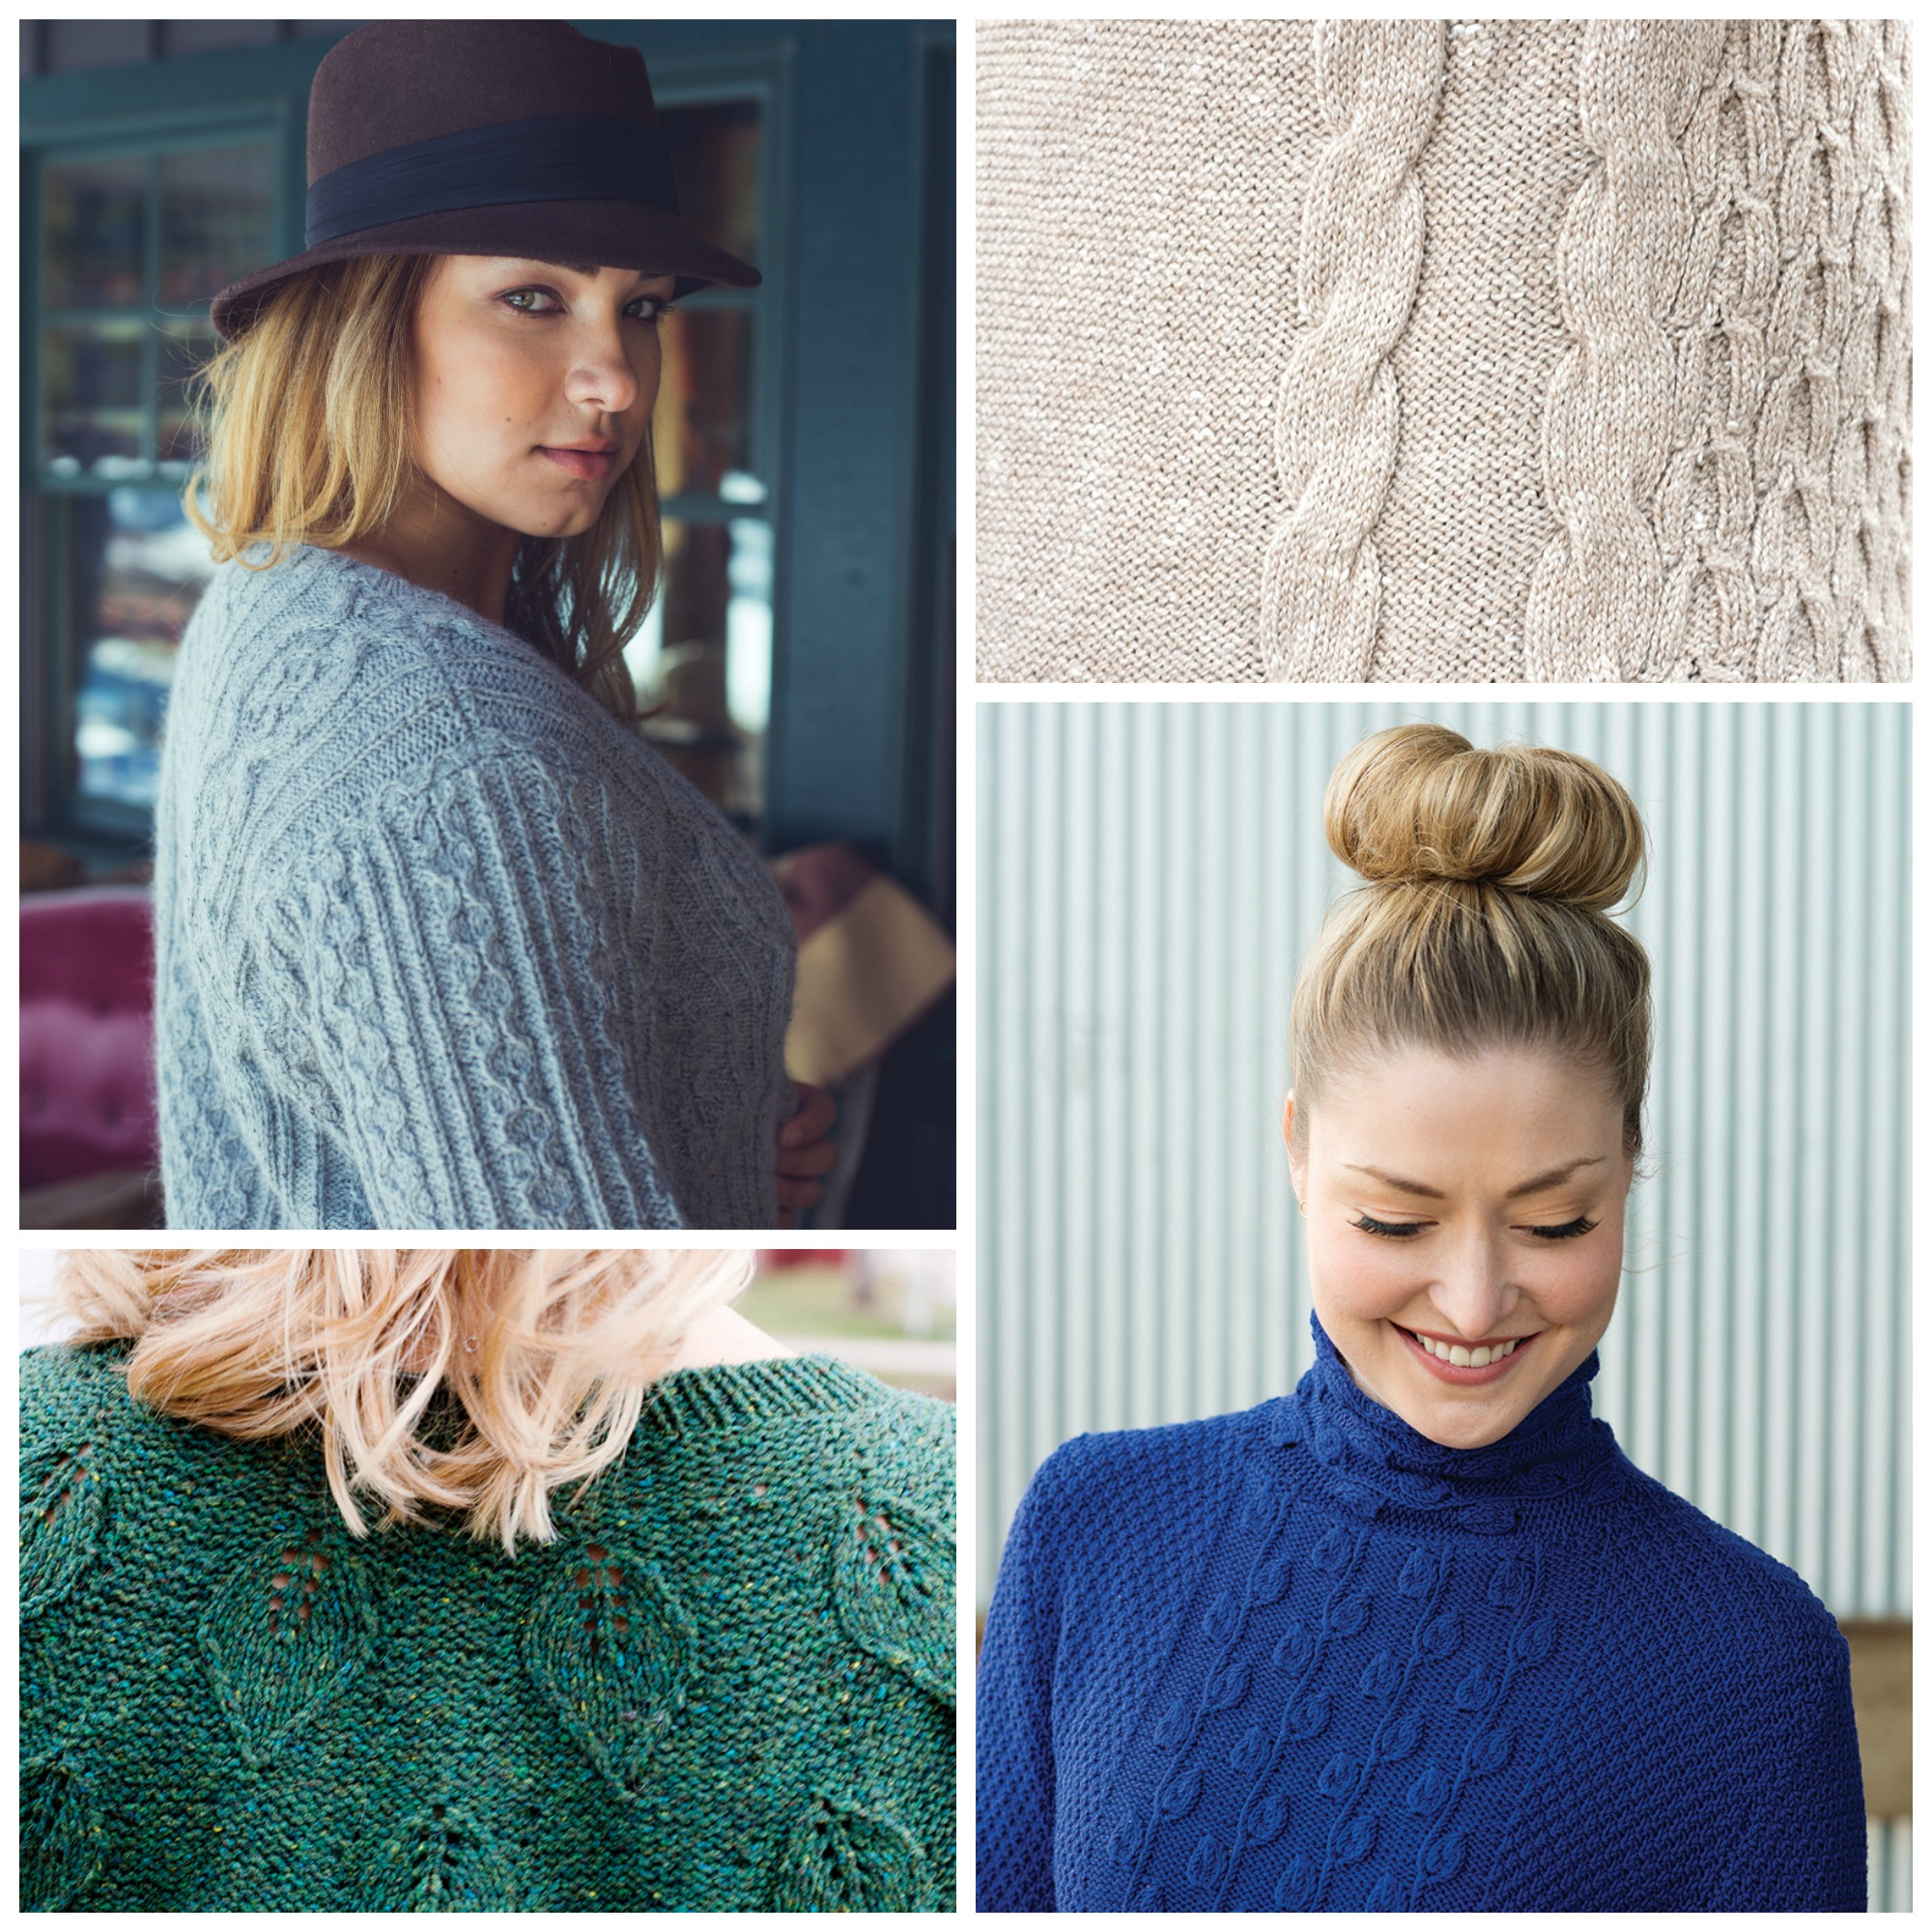 Cable knitting can produce many distinctive patterns into garments.